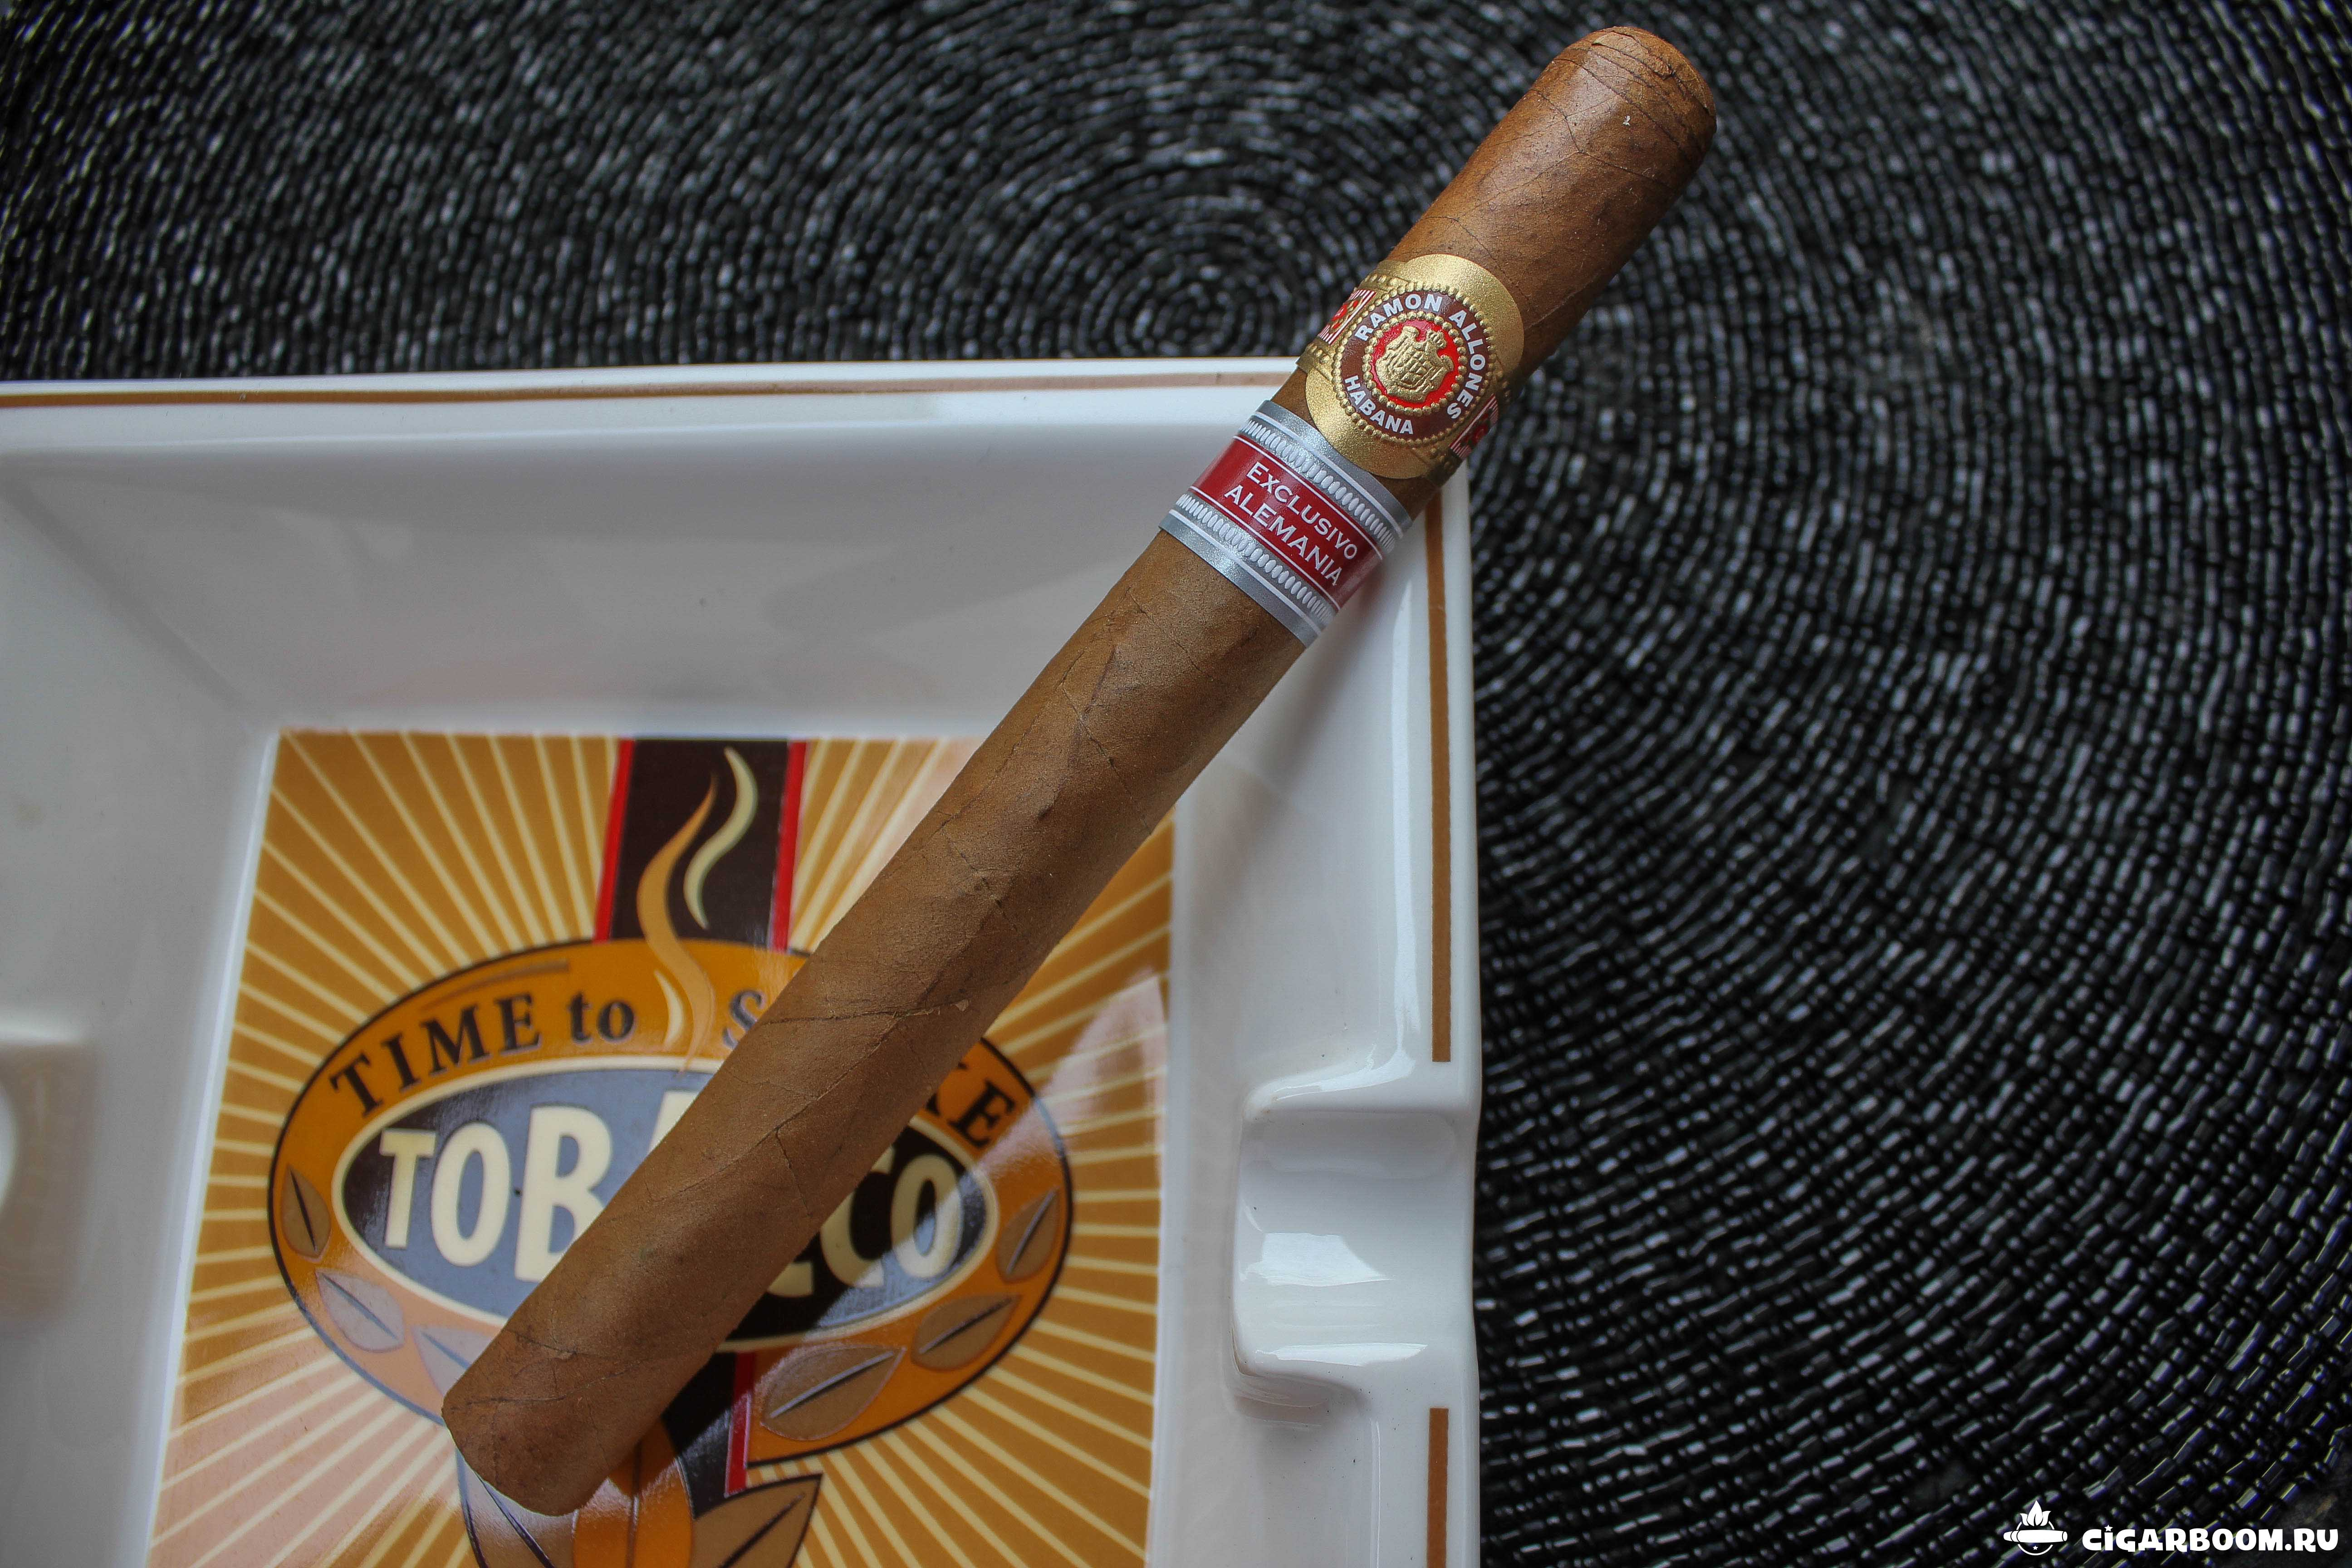 Ramon-Allones-8-9-8-Edition-Regional-Alemania-2014_1